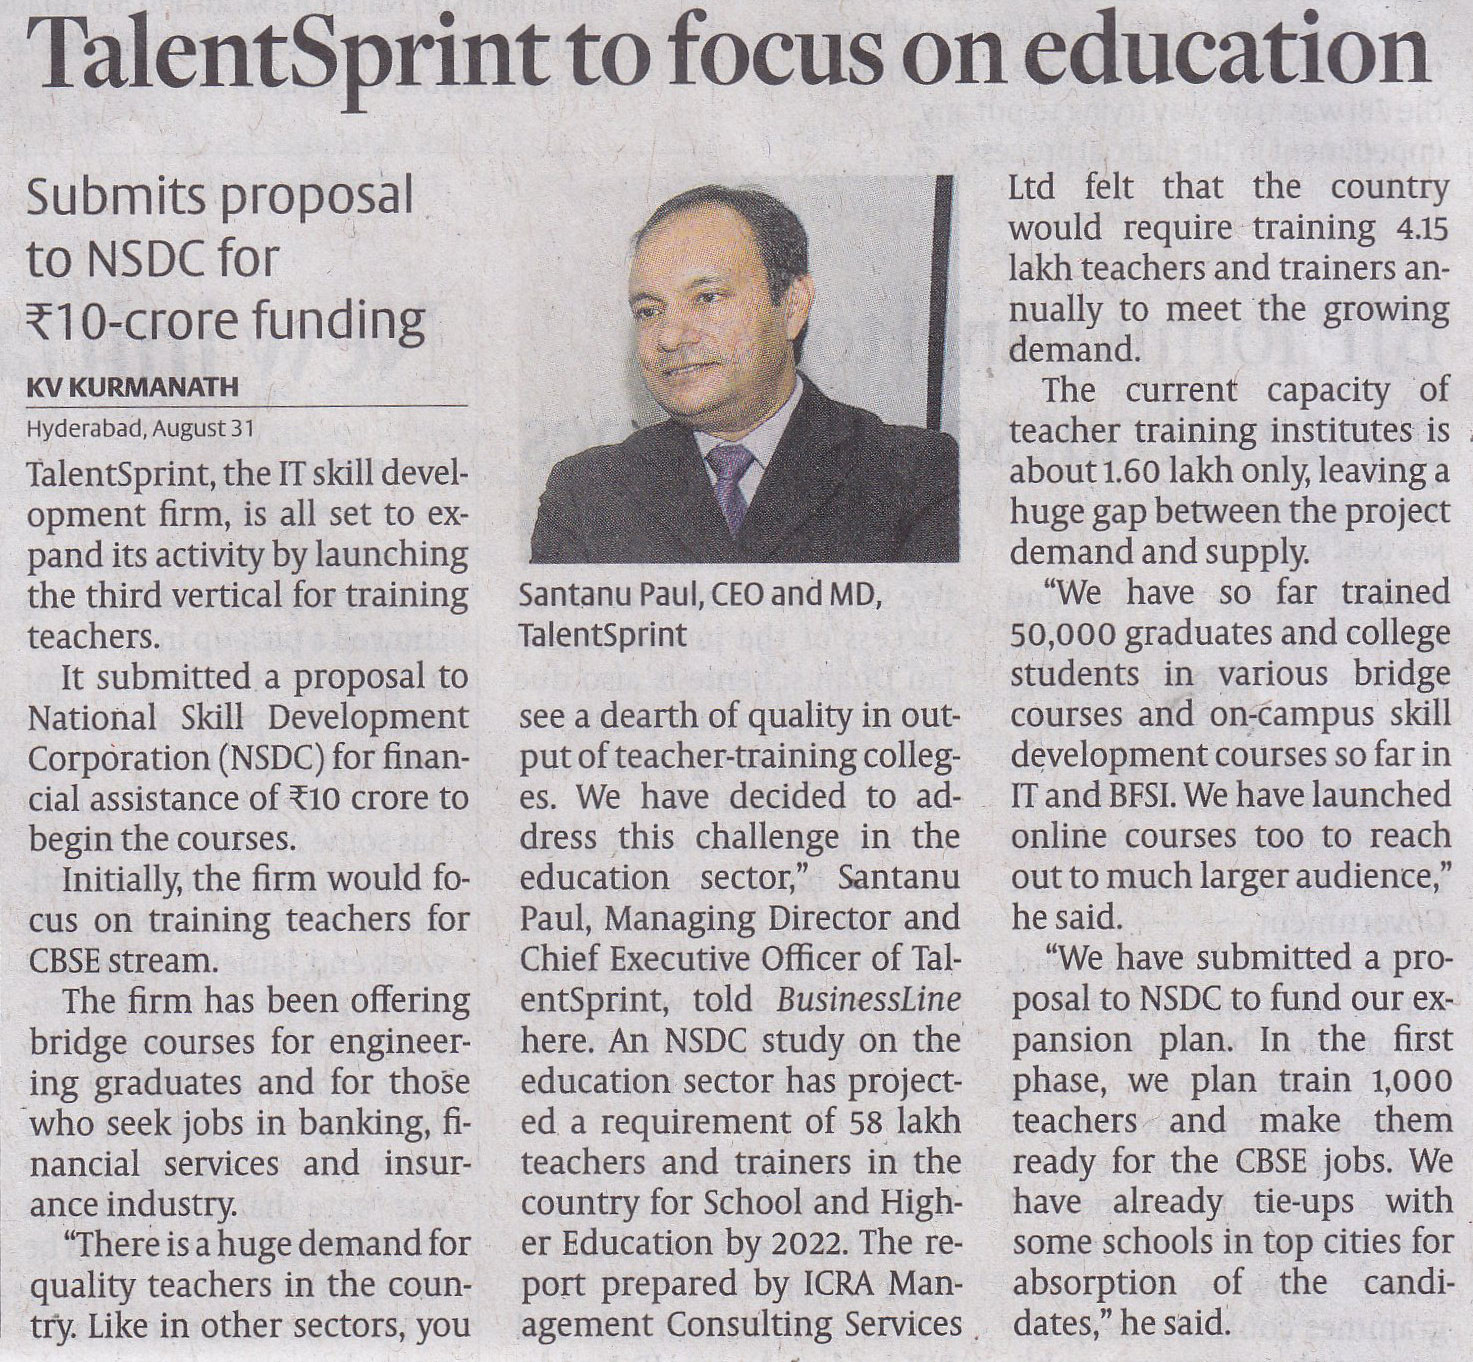 TalentSprint to focus on education